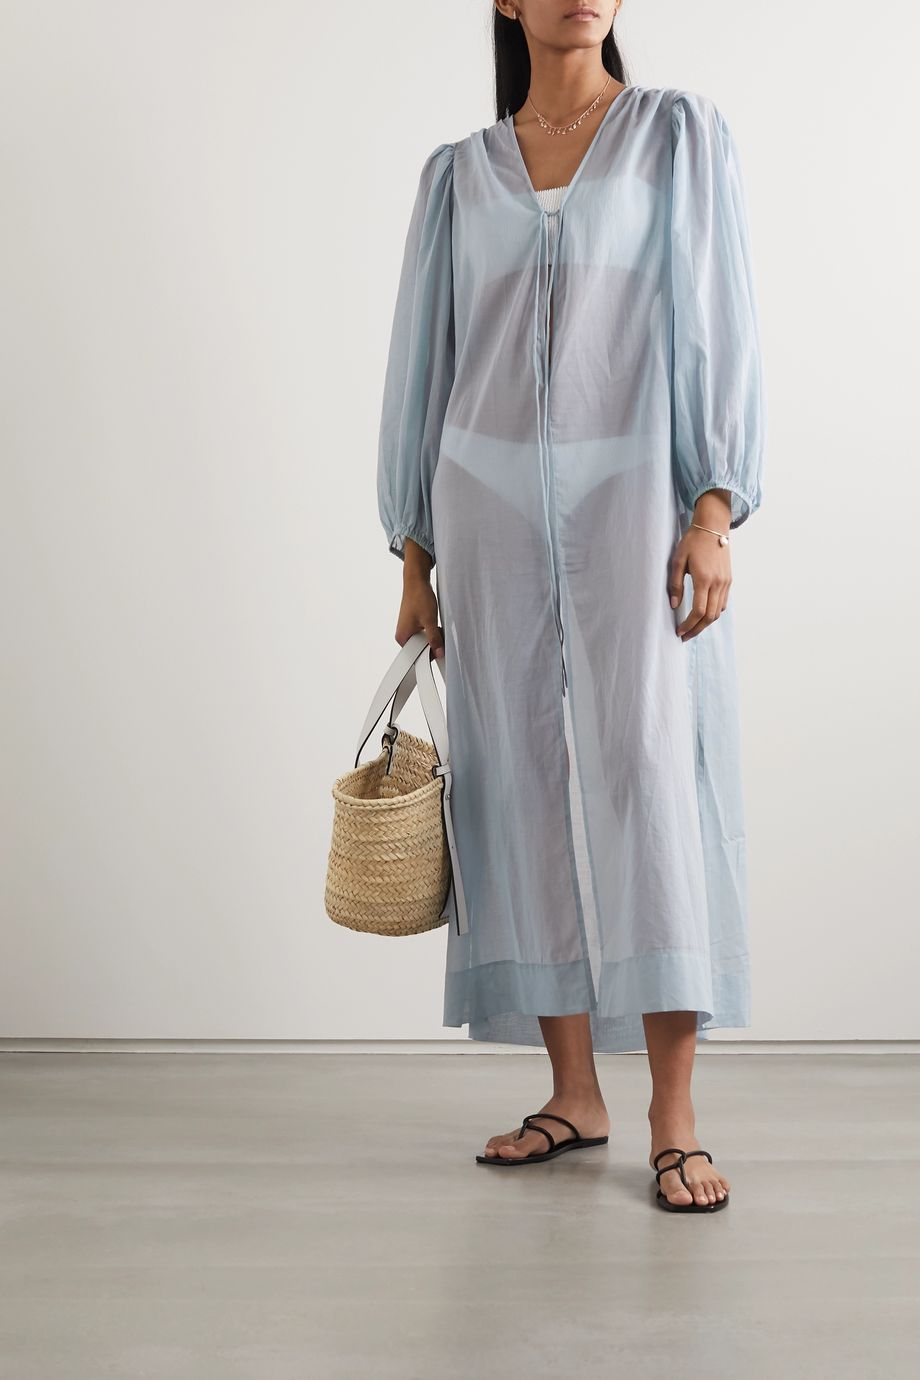 Cloe Cassandro + NET SUSTAIN Lea organic cotton-gauze midi dress